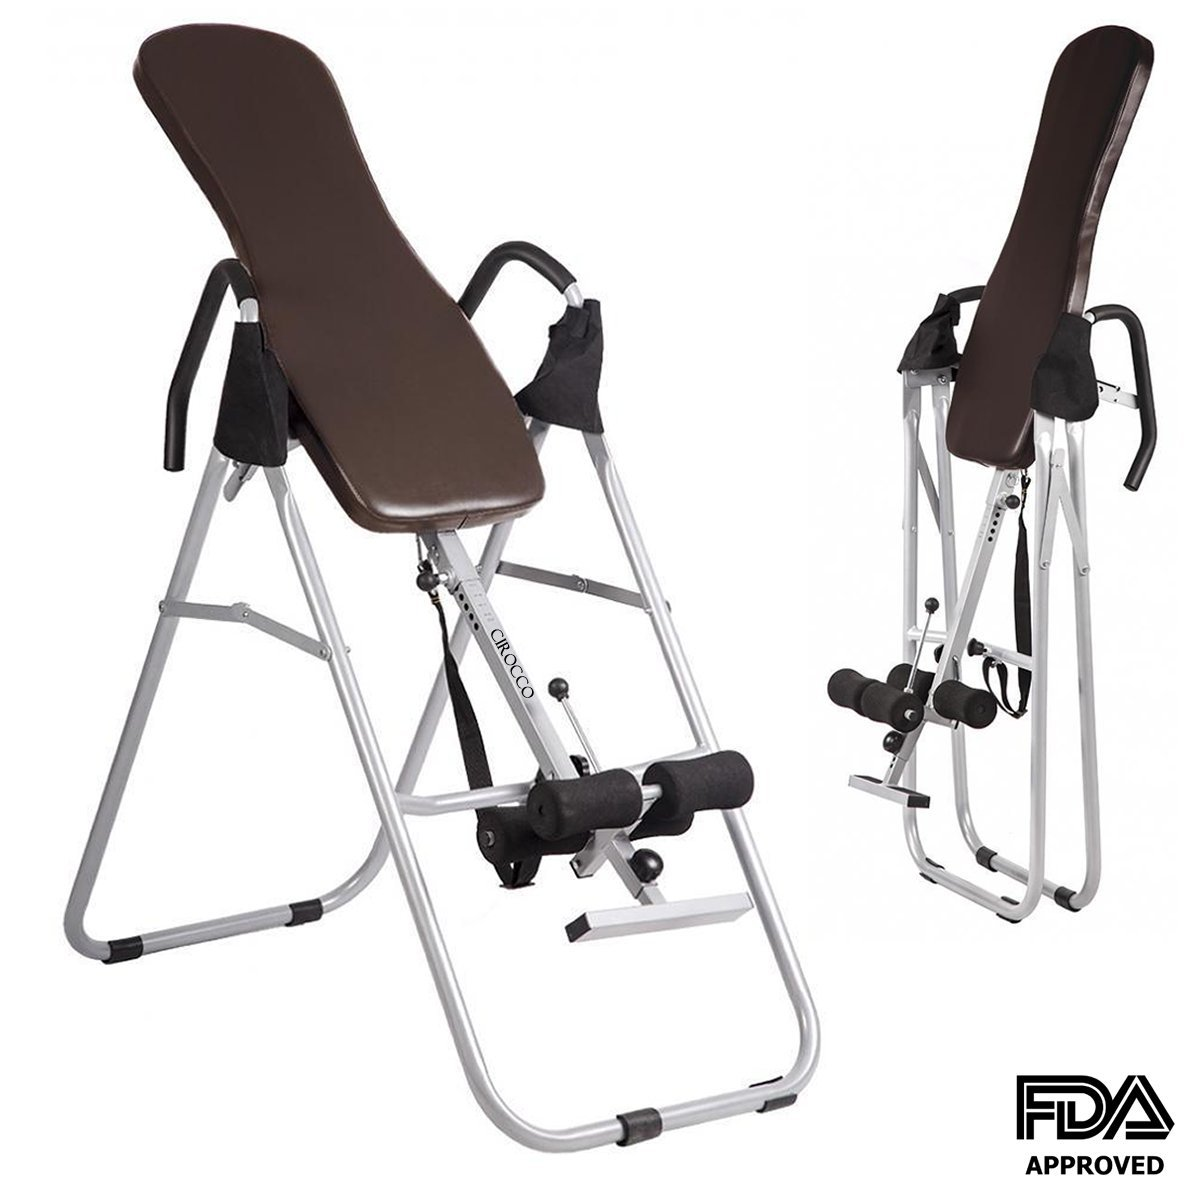 Cirocco Foldable Inversion Table for Backpain with Backrest – Heavy Duty 330 Lbs Capacity Folding Back Stretcher Machine Fitness Chiropractic Exercise Reflexology Safe for Pain Relief Neck Fatigue